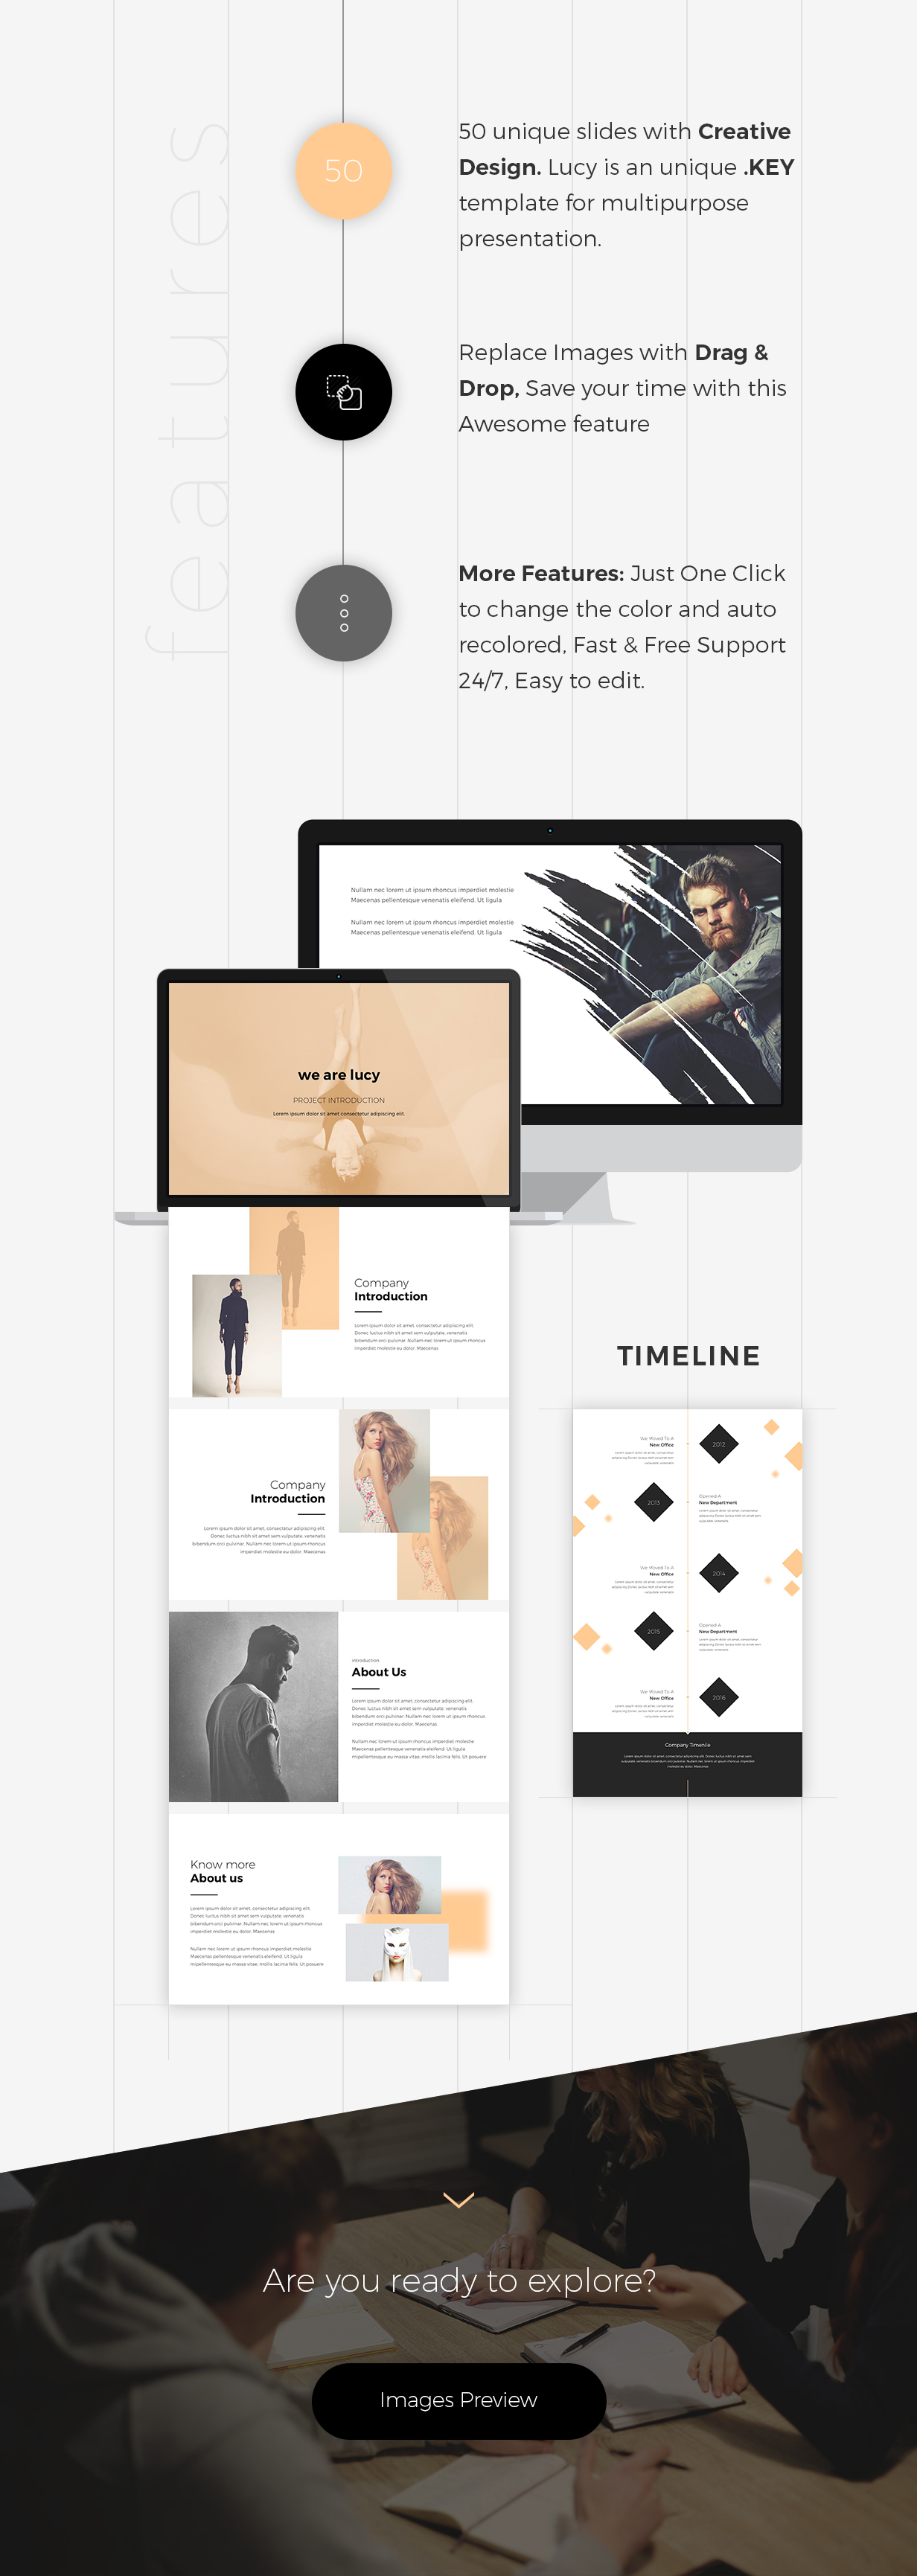 Lucy - Creative Keynote Template